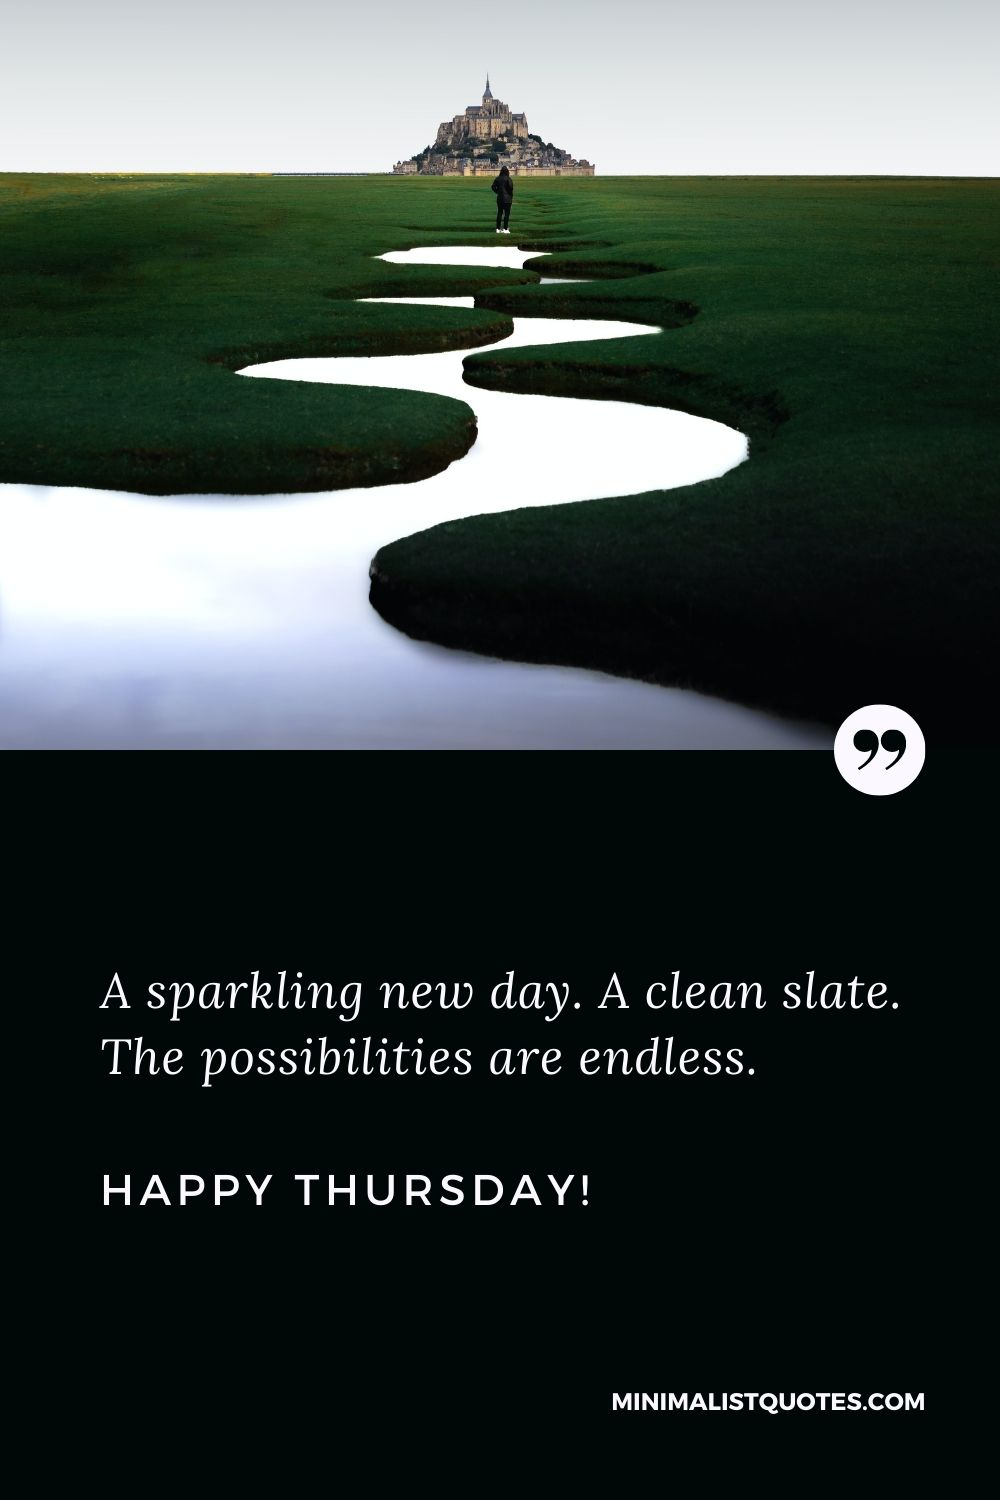 Good morning Thursday blessings images and quotes: A sparkling new day. A clean slate. The possibilities are endless. Happy Thursday!